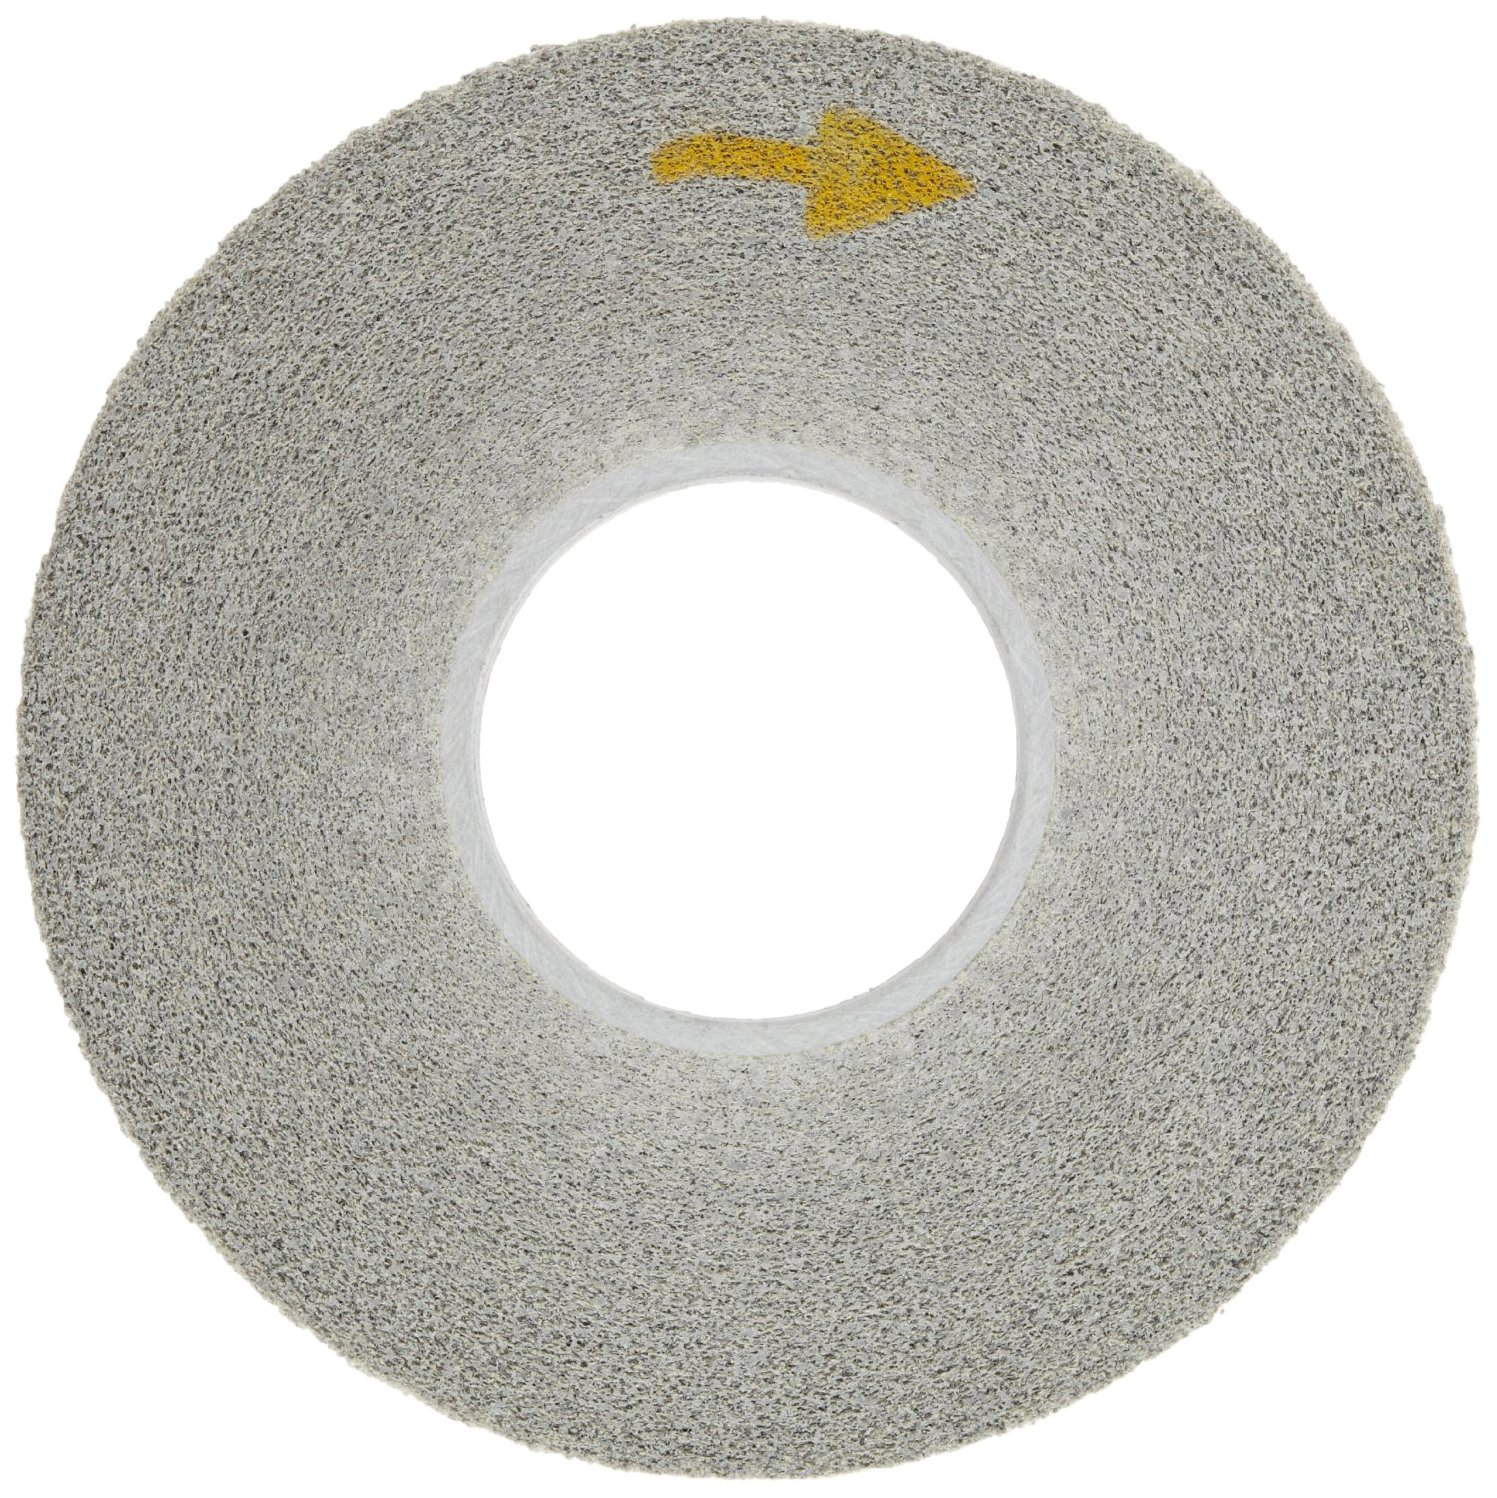 Scotch-Brite(TM) EXL Deburring Wheel, Silicon Carbide, 3000 rpm, 12 Diameter x 1 Width, 5 Arbor, 9S Fine Grit (Pack of 1)